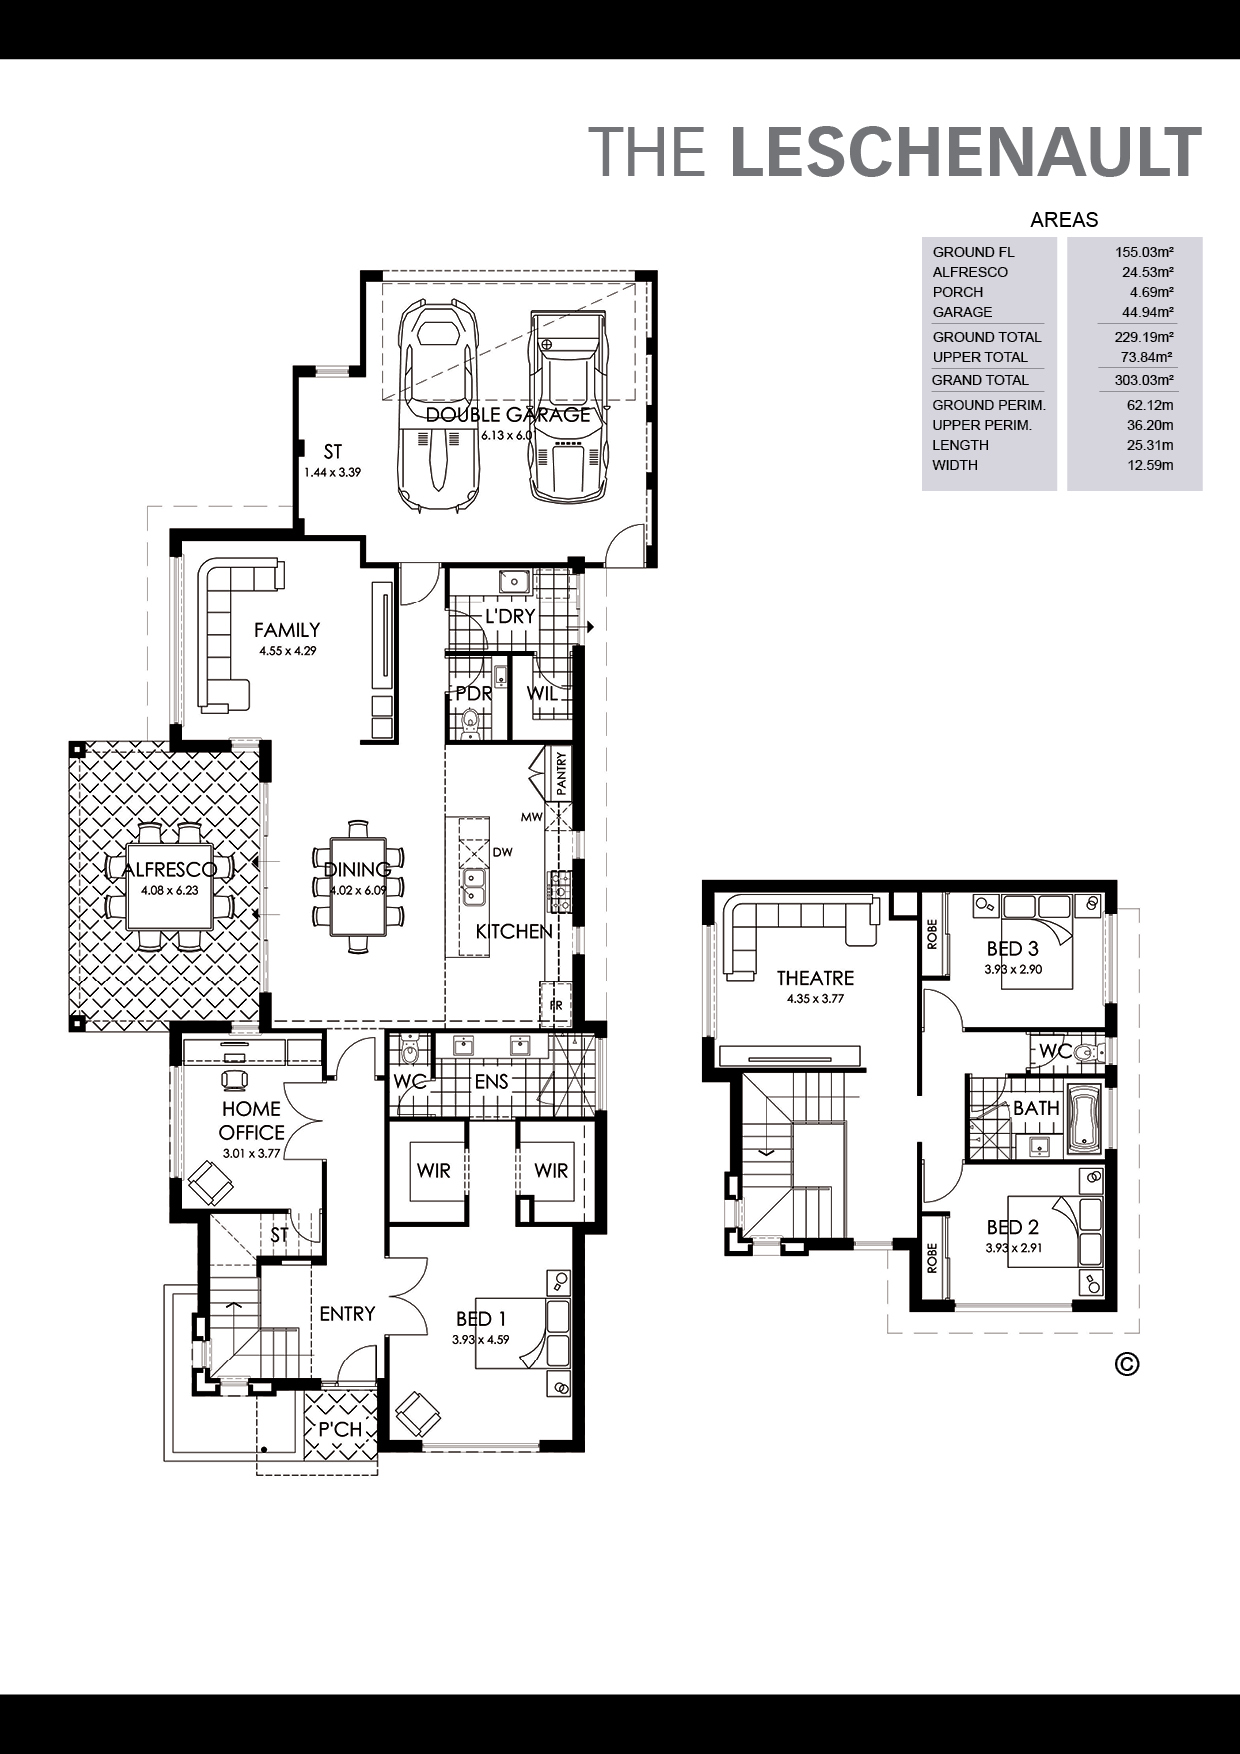 The Leschenault Floorplan